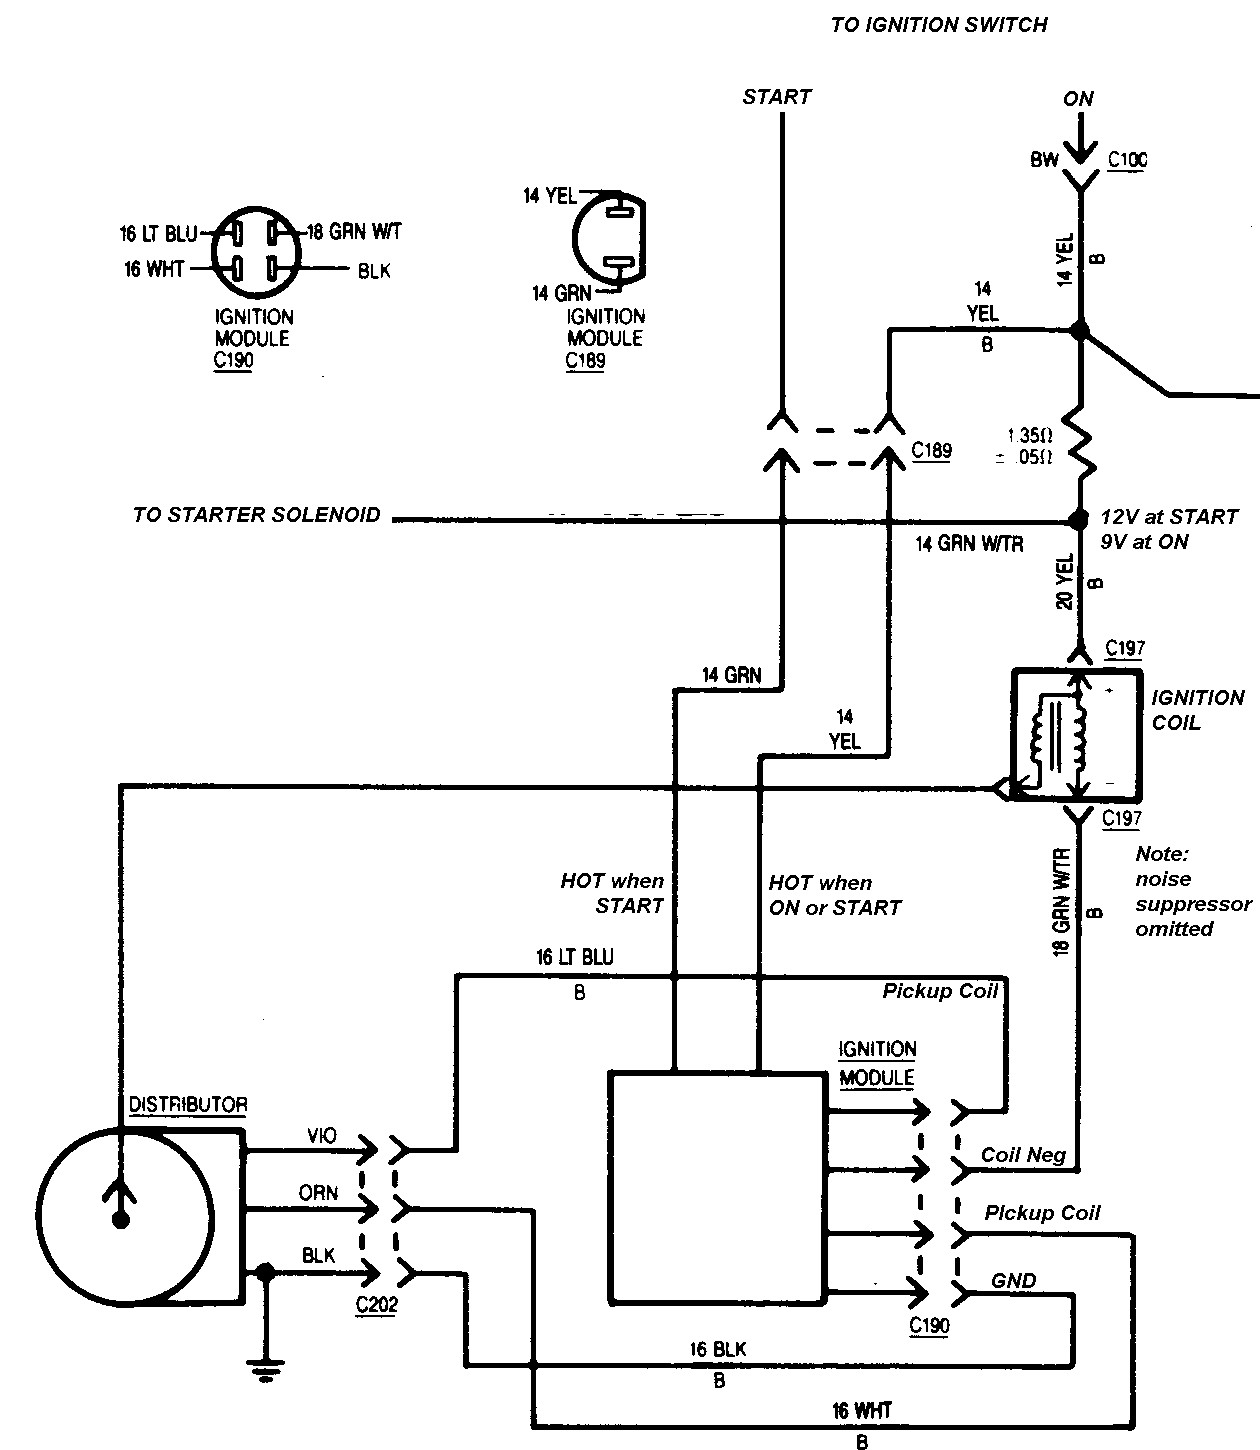 Gm Tbi Distributor Wiring Diagram Schematics Conversion Harness Troubled Child Ignition Chevy Truck Fuel Pump